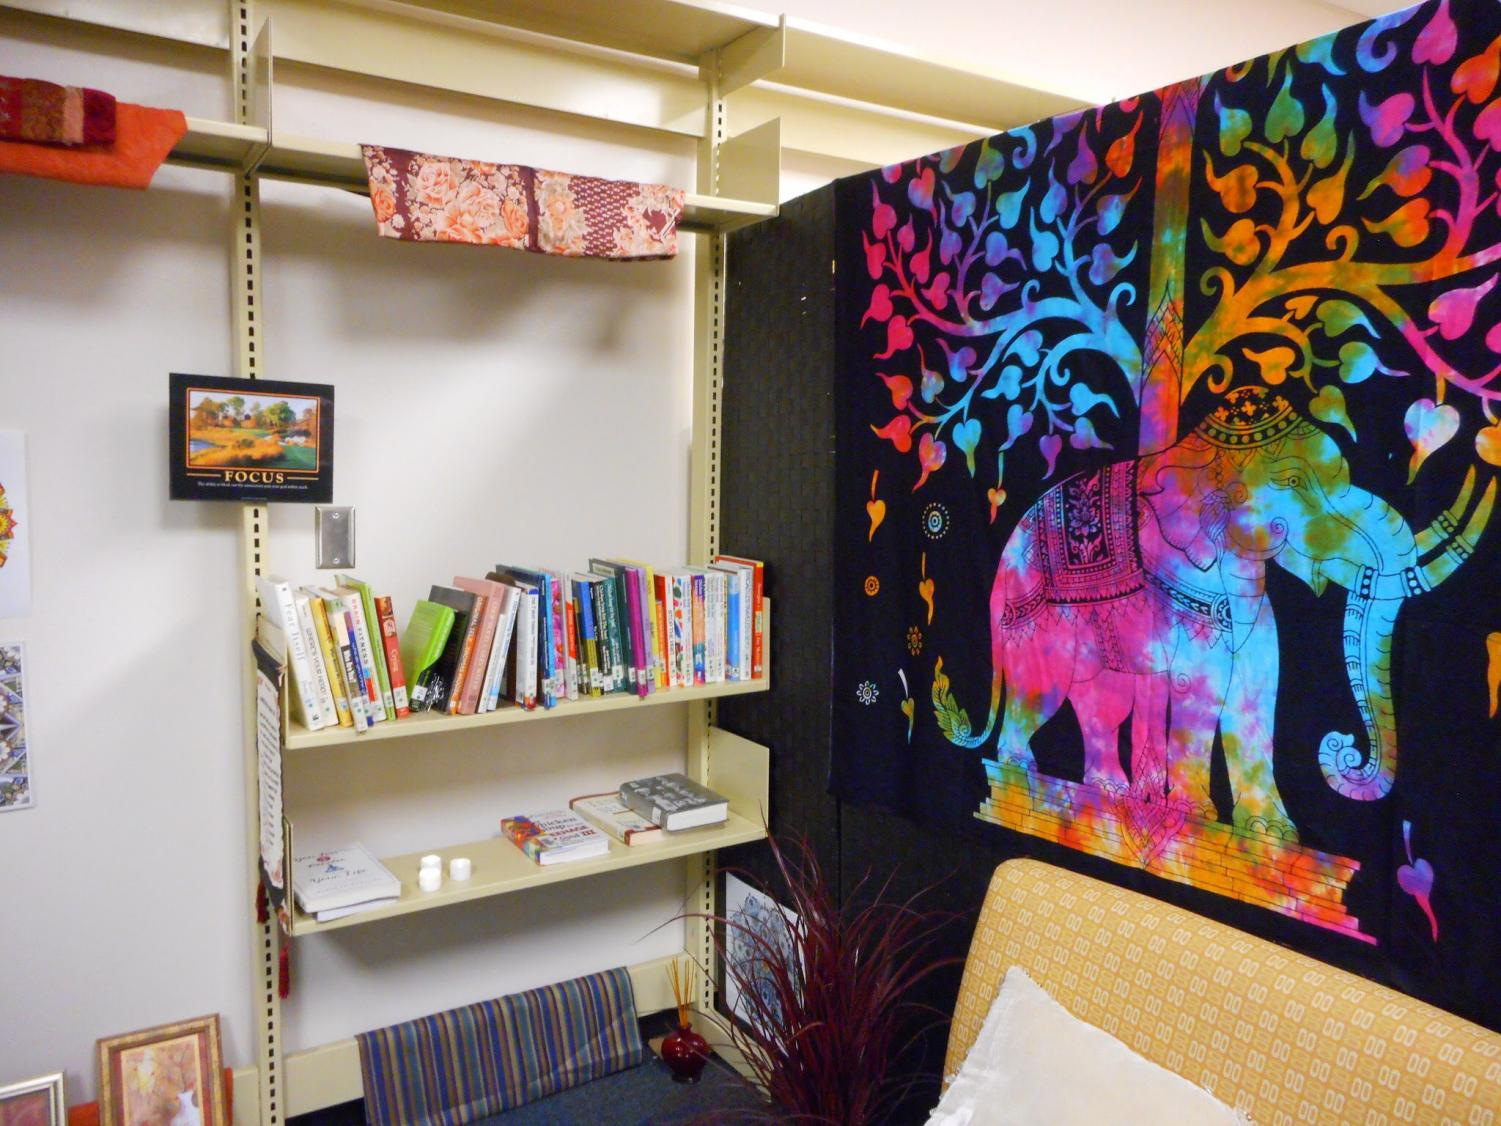 The Meditation Room is full of items, like books and small couches, to create a relaxing environment.